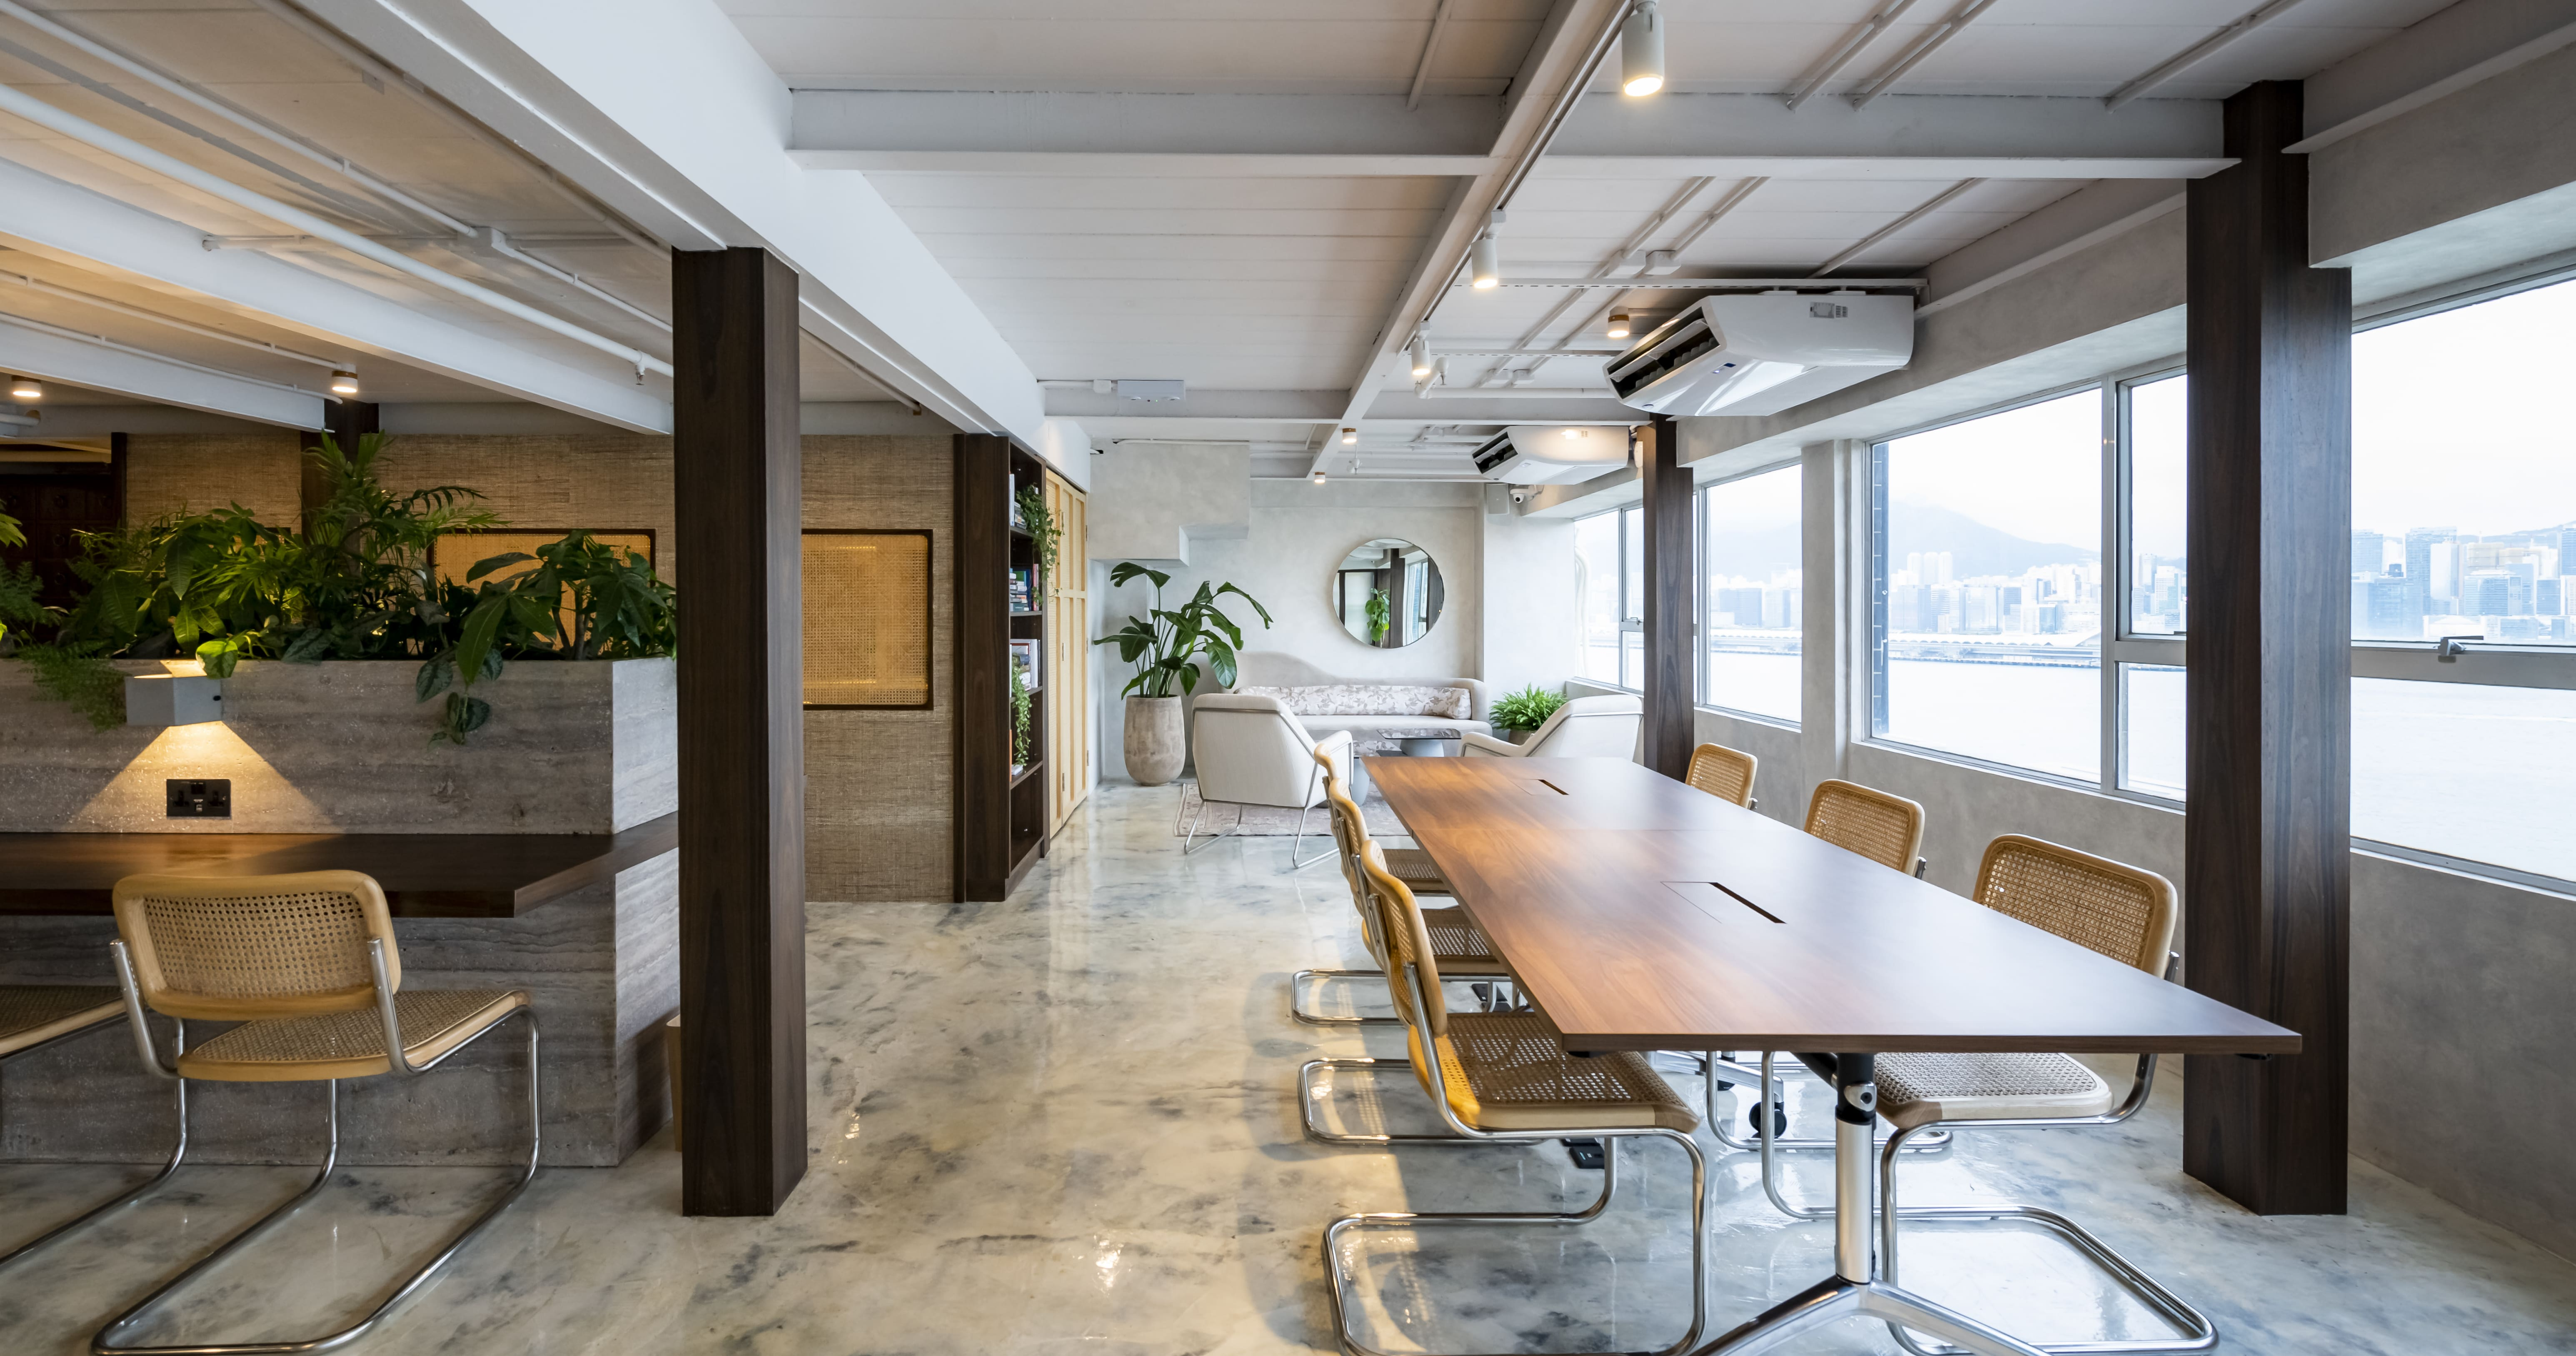 Want to integrate sustainable principles and eco-friendly operations into your business? Check out Banyan Workspace